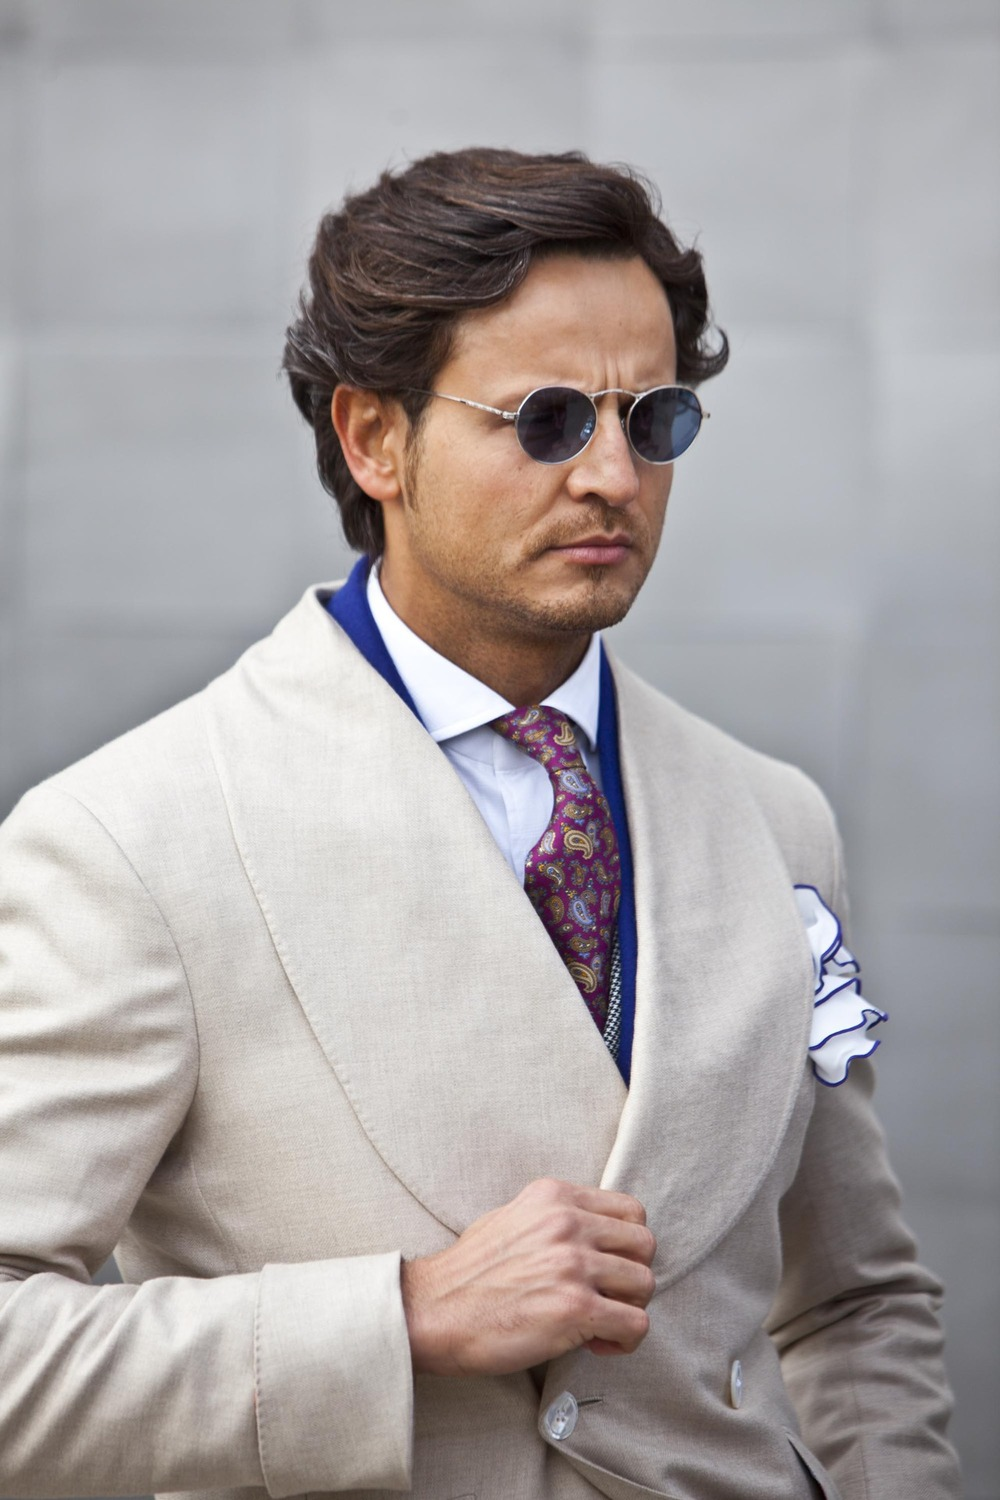 paisley-sunglasses-pitti.jpg